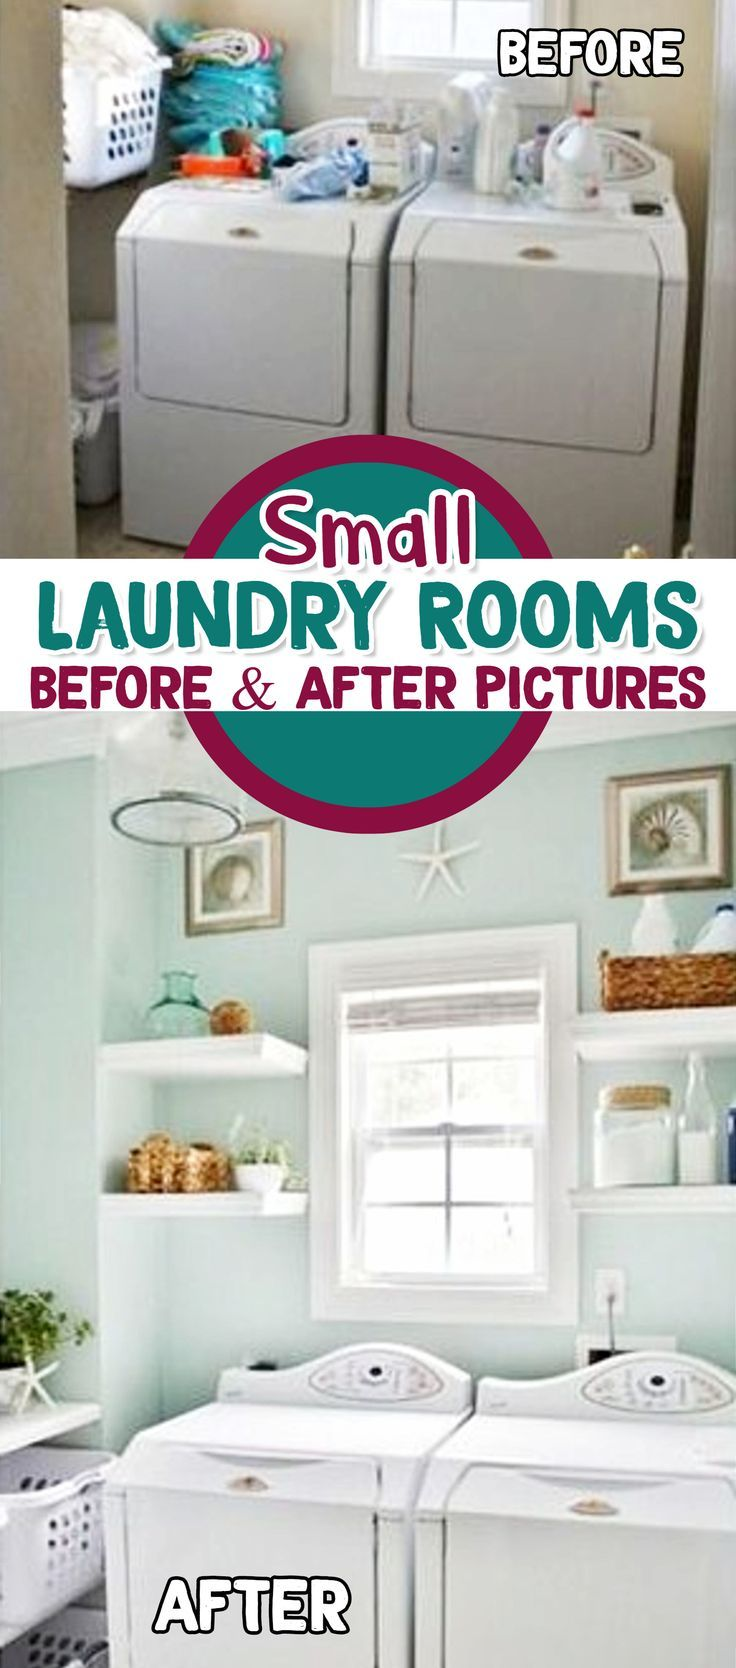 Laundry room ideas #laundryroomideas